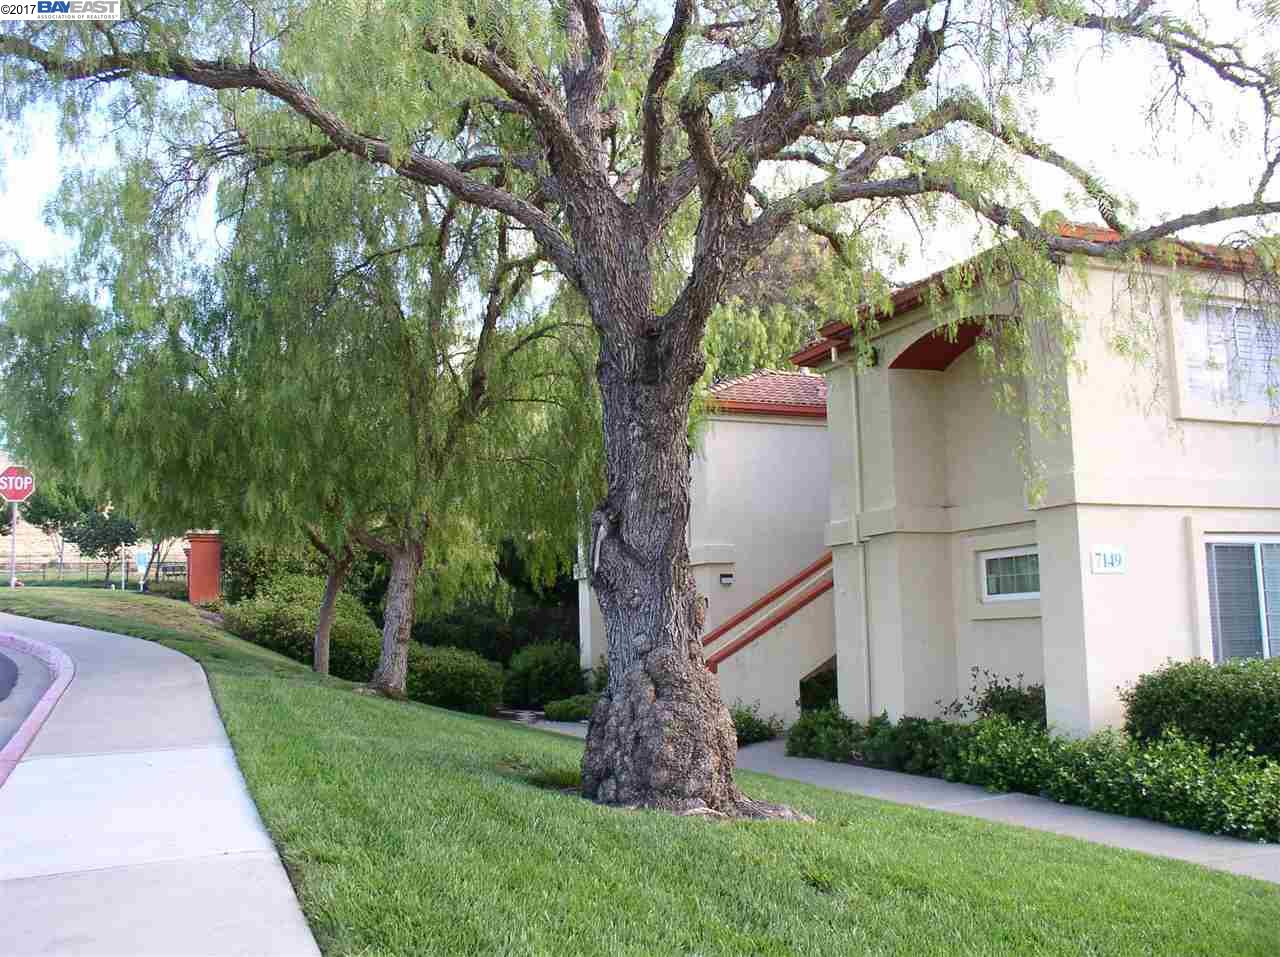 Additional photo for property listing at 7149 Dublin Meadows Street  Dublin, カリフォルニア 94568 アメリカ合衆国